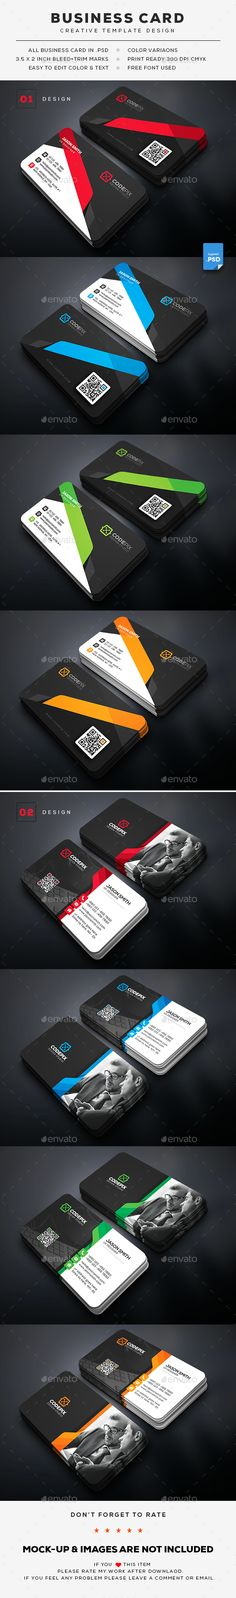 Business Card Bundle — Photoshop PSD #simple #abstract • Available here → https://graphicriver.net/item/business-card-bundle/20529485?ref=pxcr